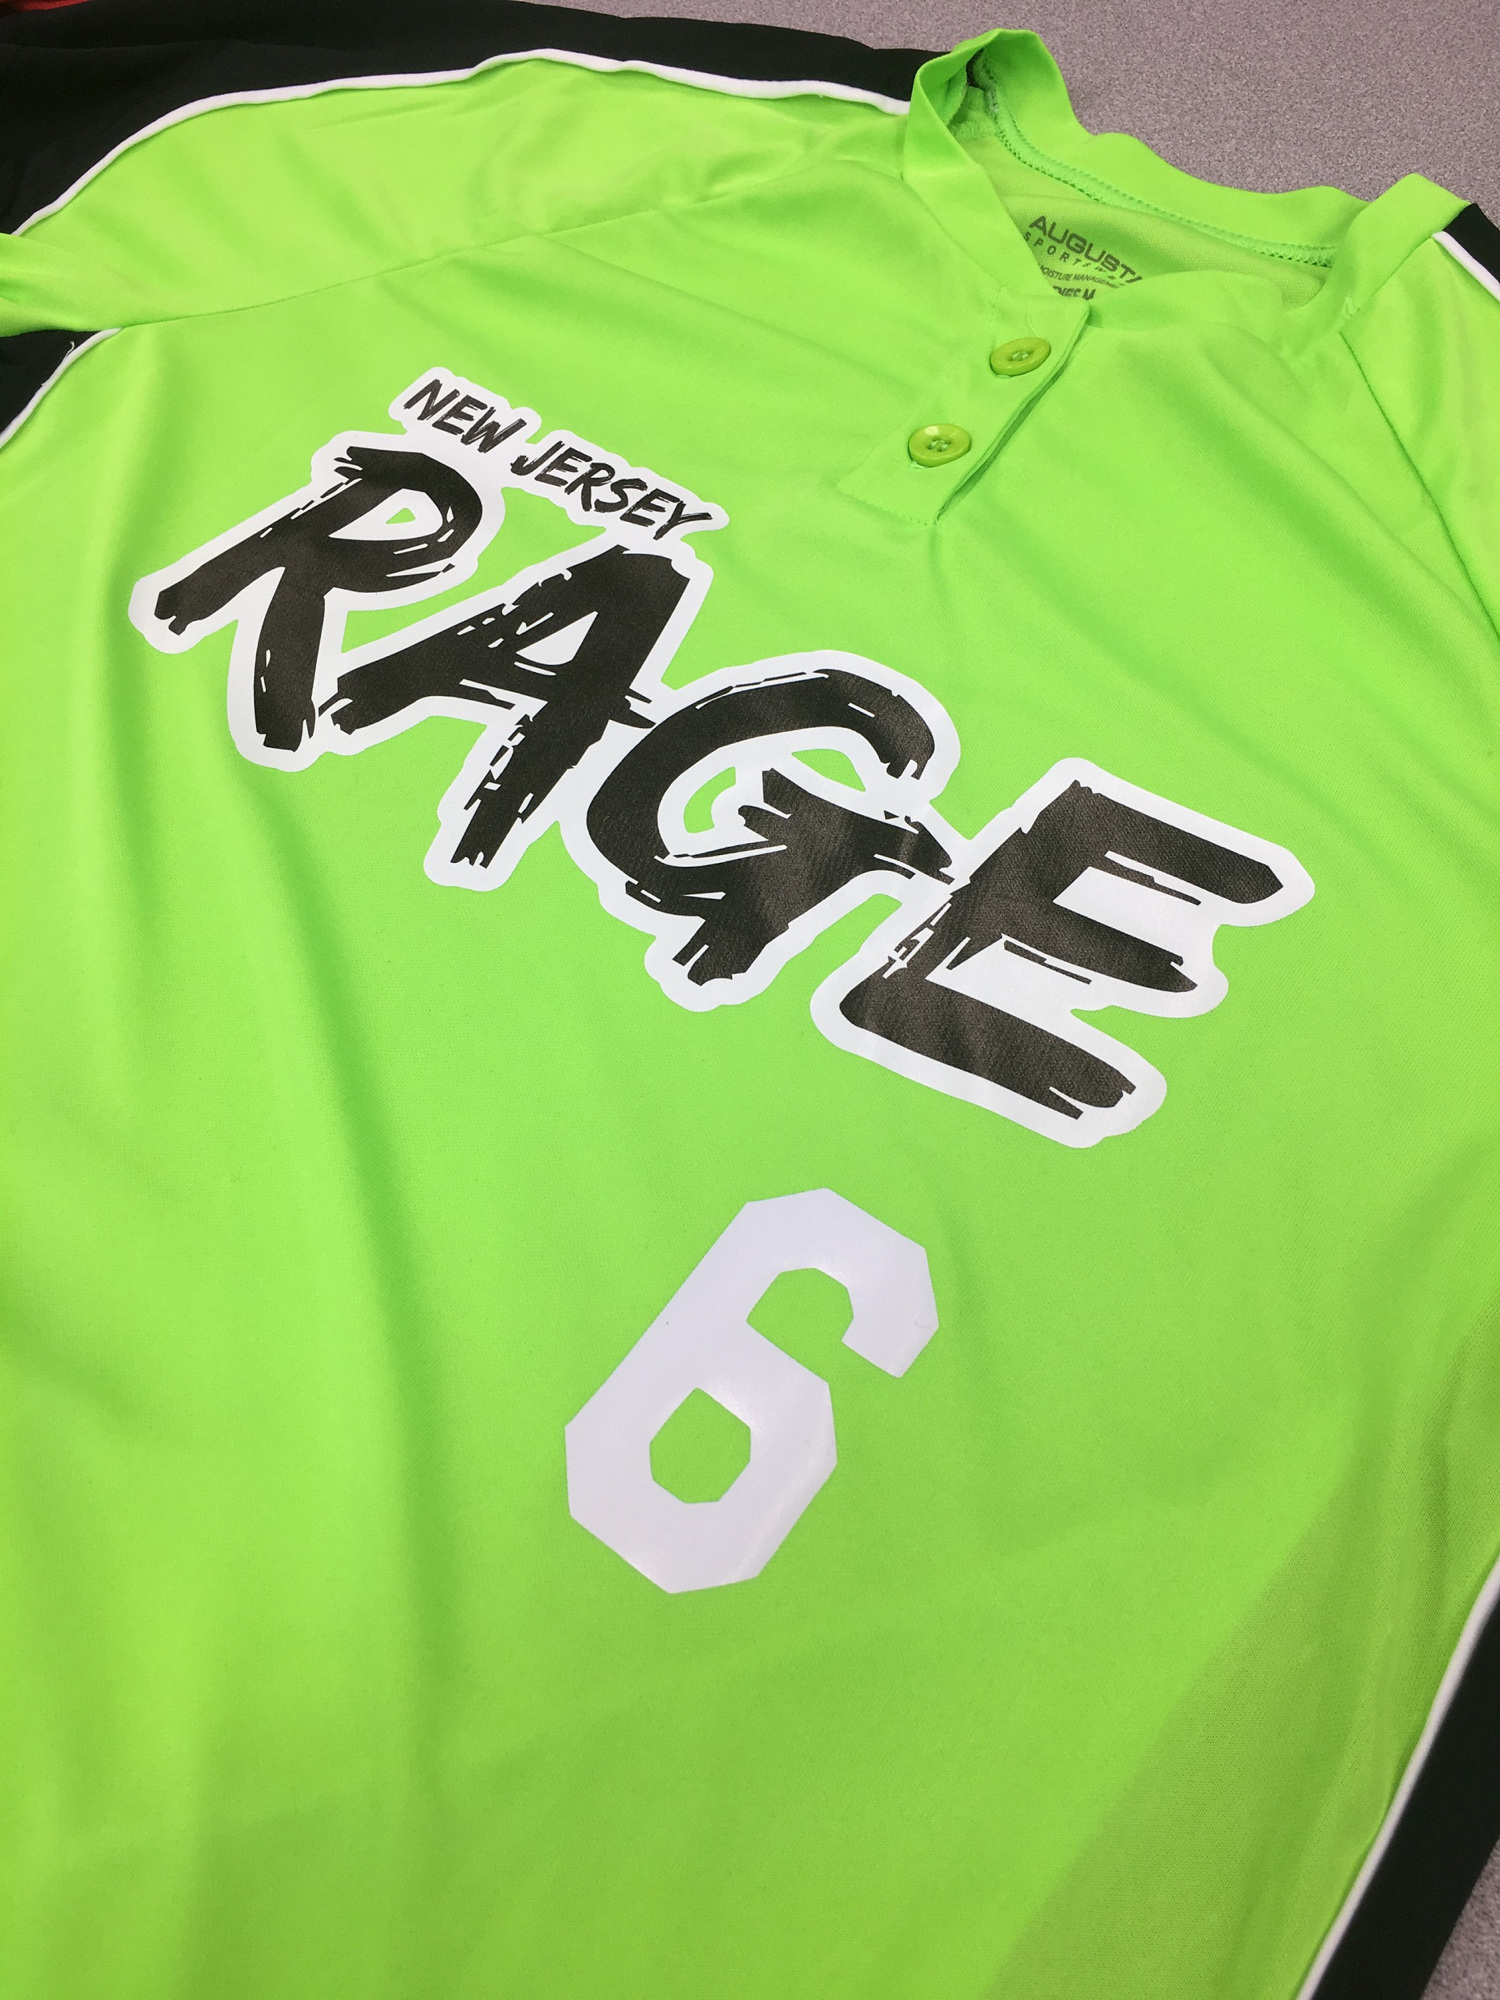 NJ Rage Softball Jersey